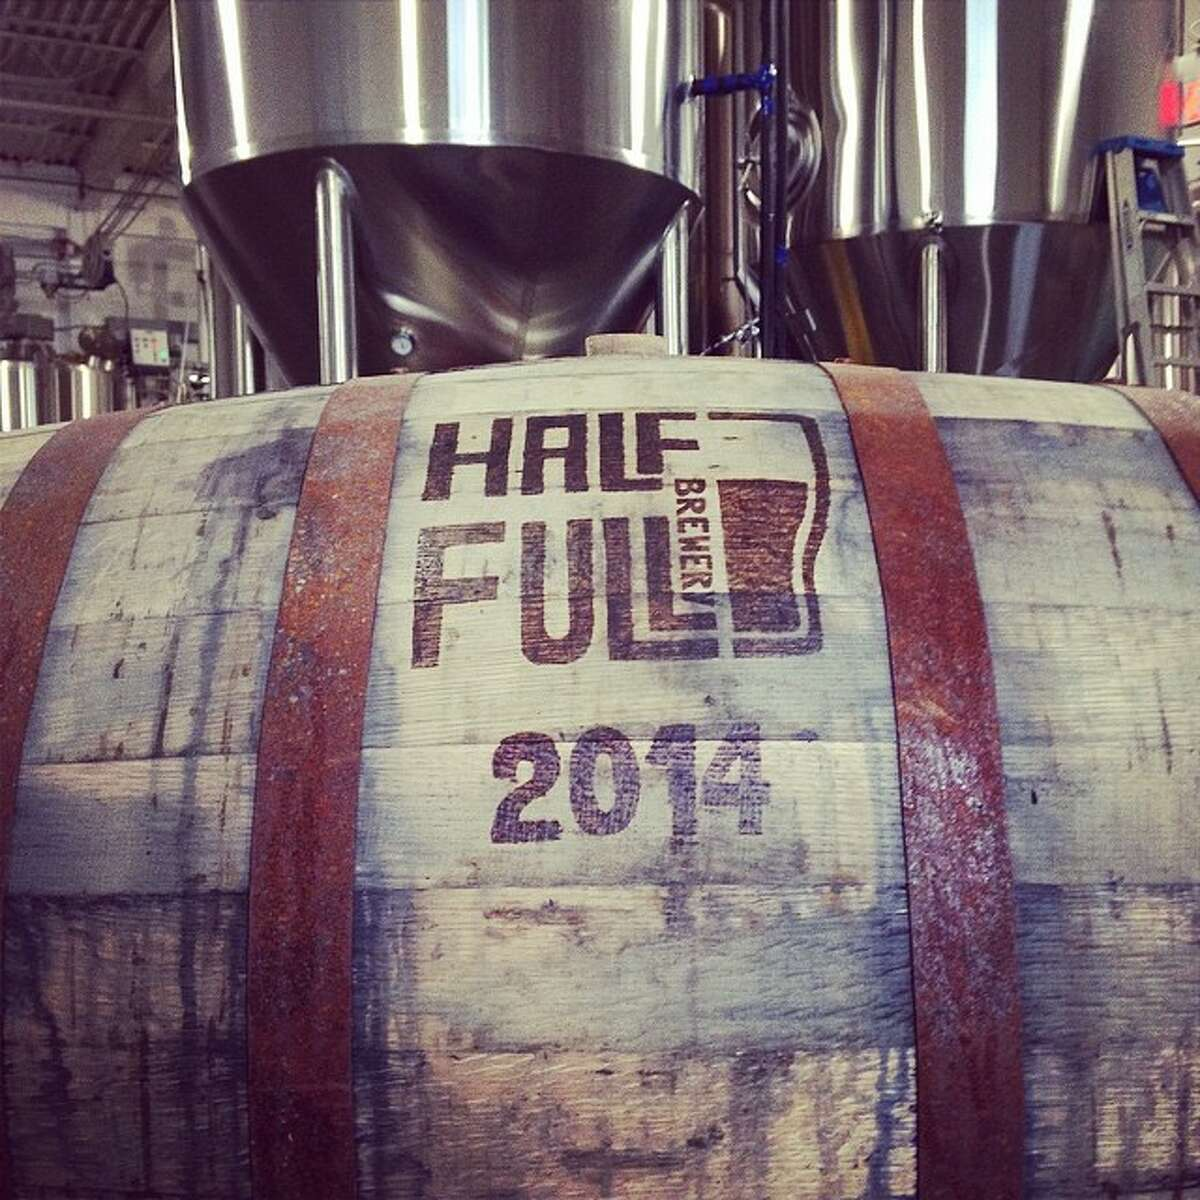 On Friday, Half Full in Stamford invites you to one of their famous open houses. For just $15, enjoy open taps while playing corn hole and life-sized Jenga. Feel free to bring your own food. Find out more.